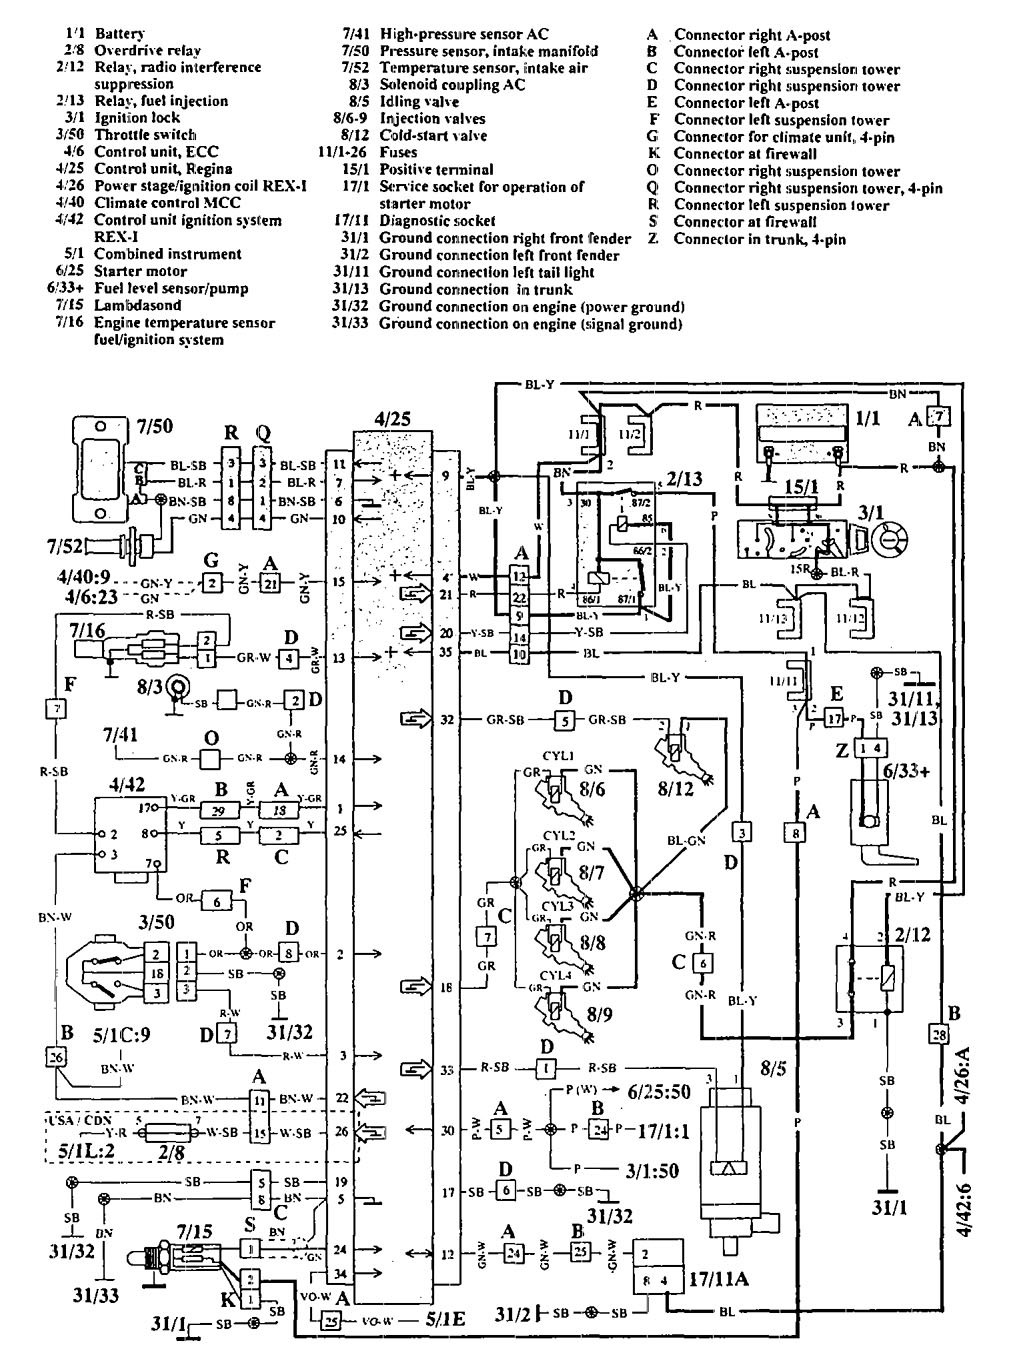 volvo 940 wiring diagram fuel controls v1 1 1992 volvo 940 wiring diagram 1991 volvo 940 wiring diagram at gsmx.co